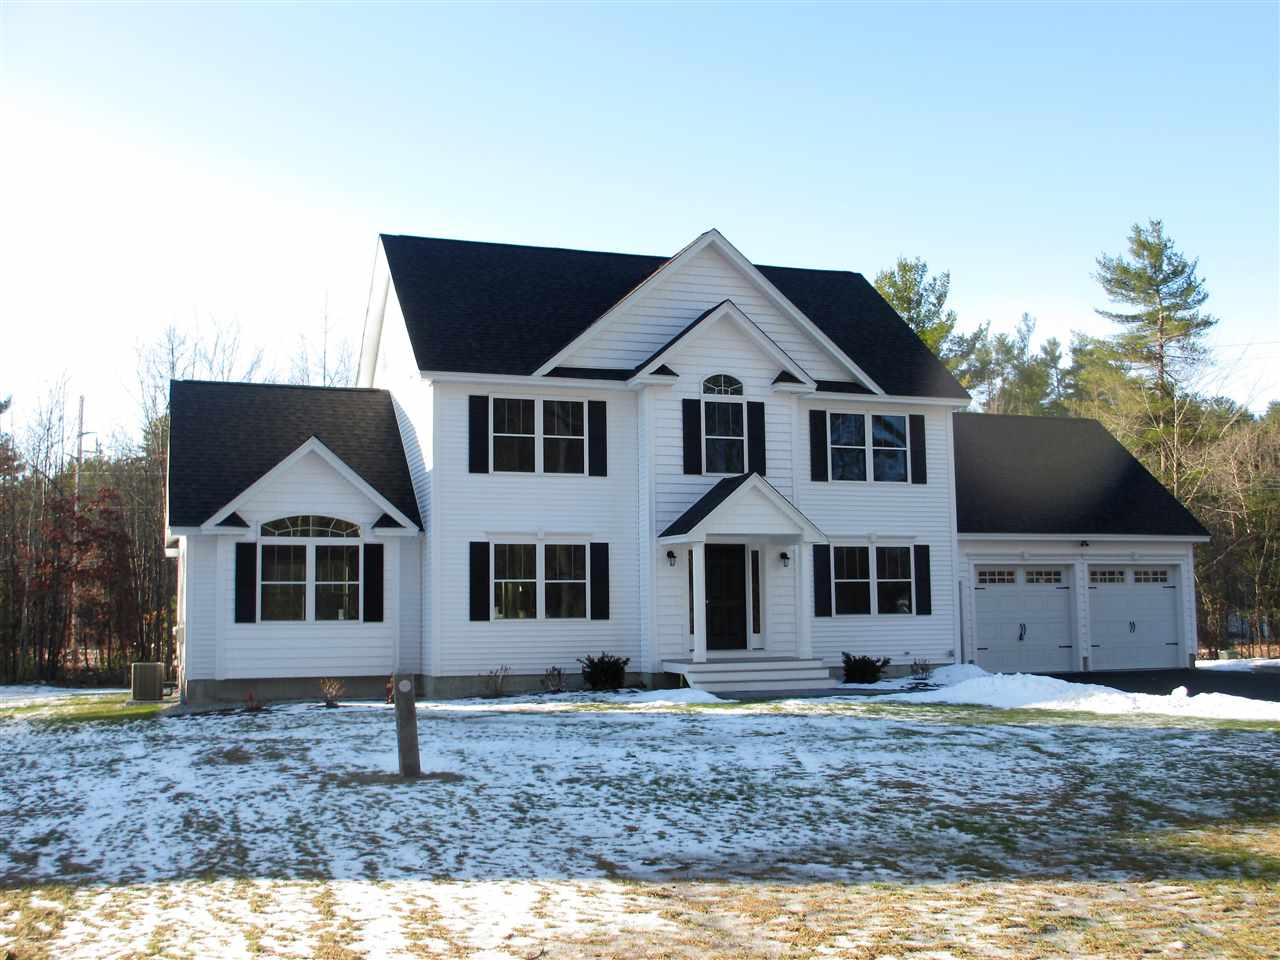 Photo of 62 HOIT Road Concord NH 03301